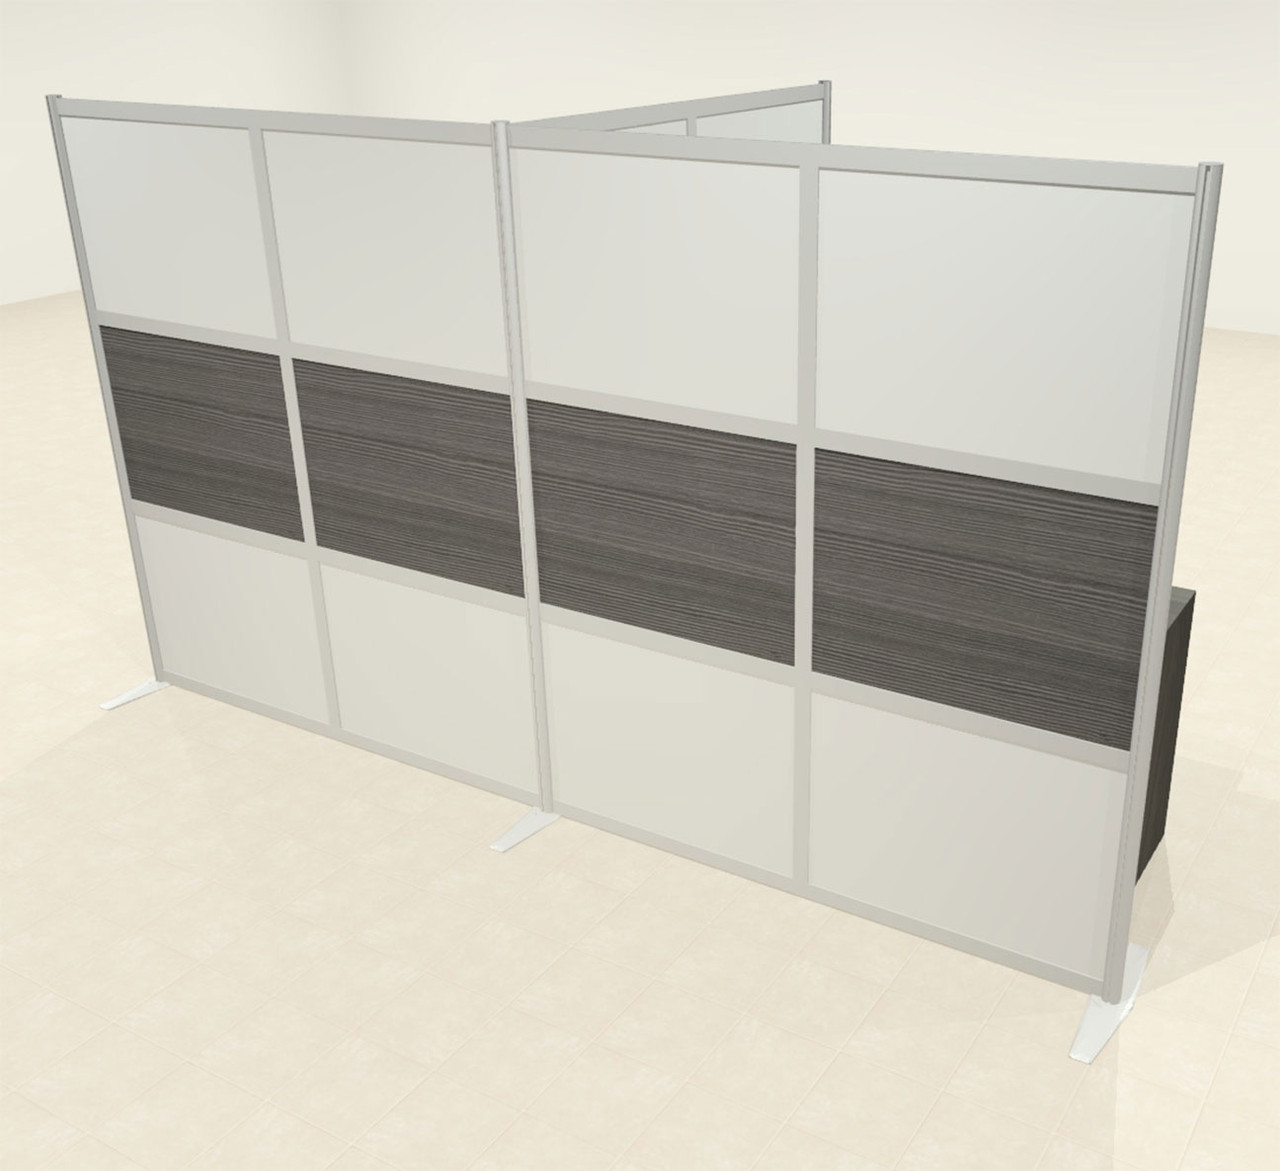 One T Shaped Loft Modern Office Home Aluminum Frame Partition / Divider / Sneeze Guard, #UT-ALU-P67-B